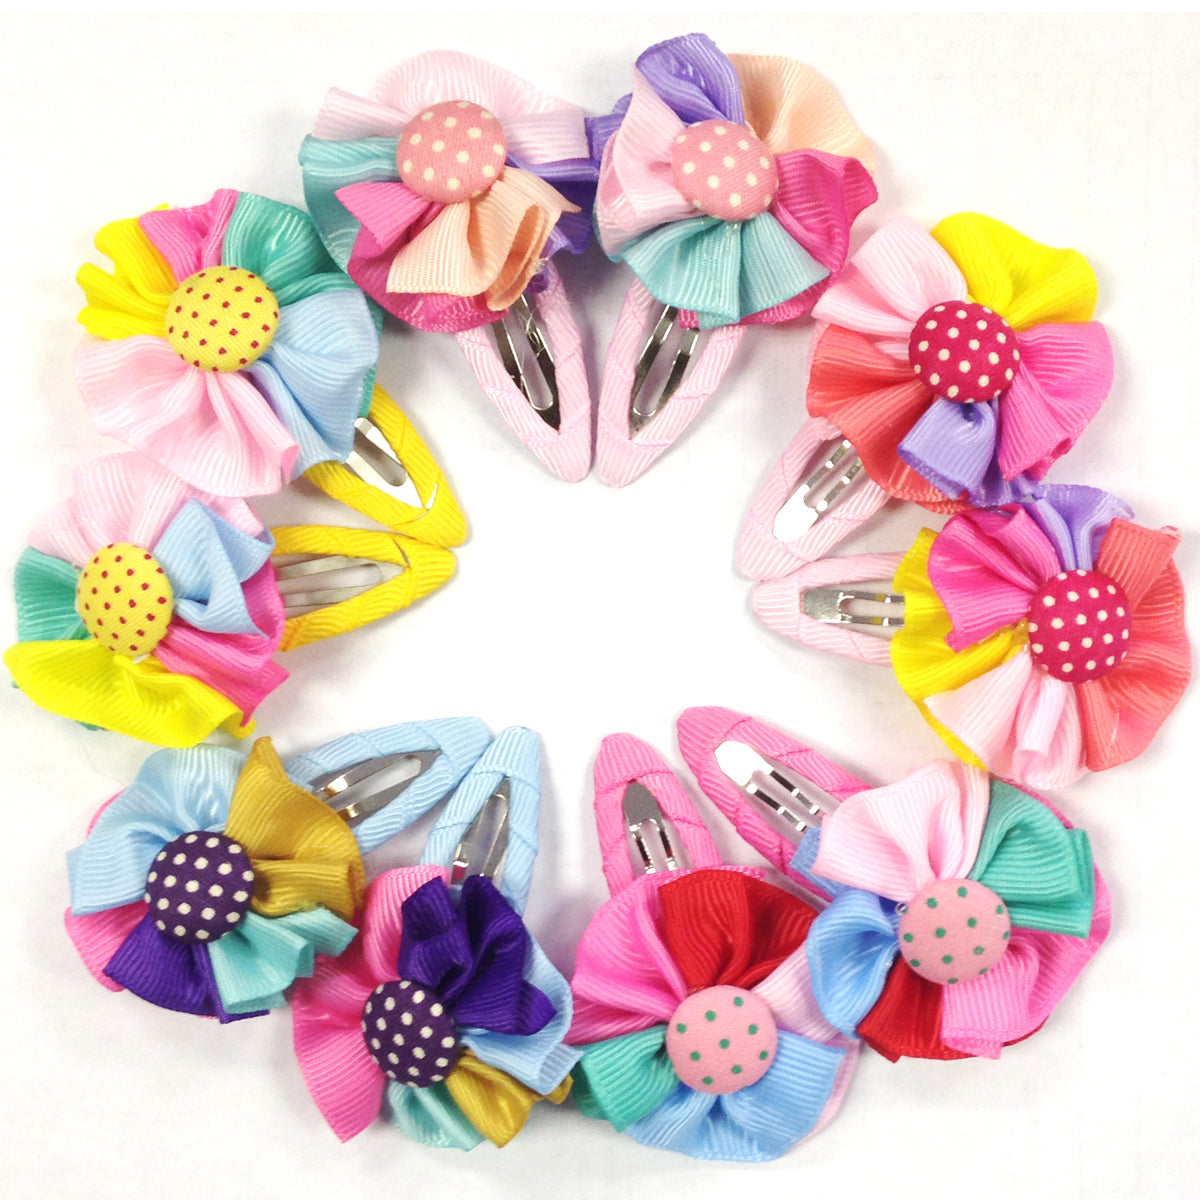 Wrapables Rainbow Ribbon Flower Hair Clips for Toddler Girl, Set of 5